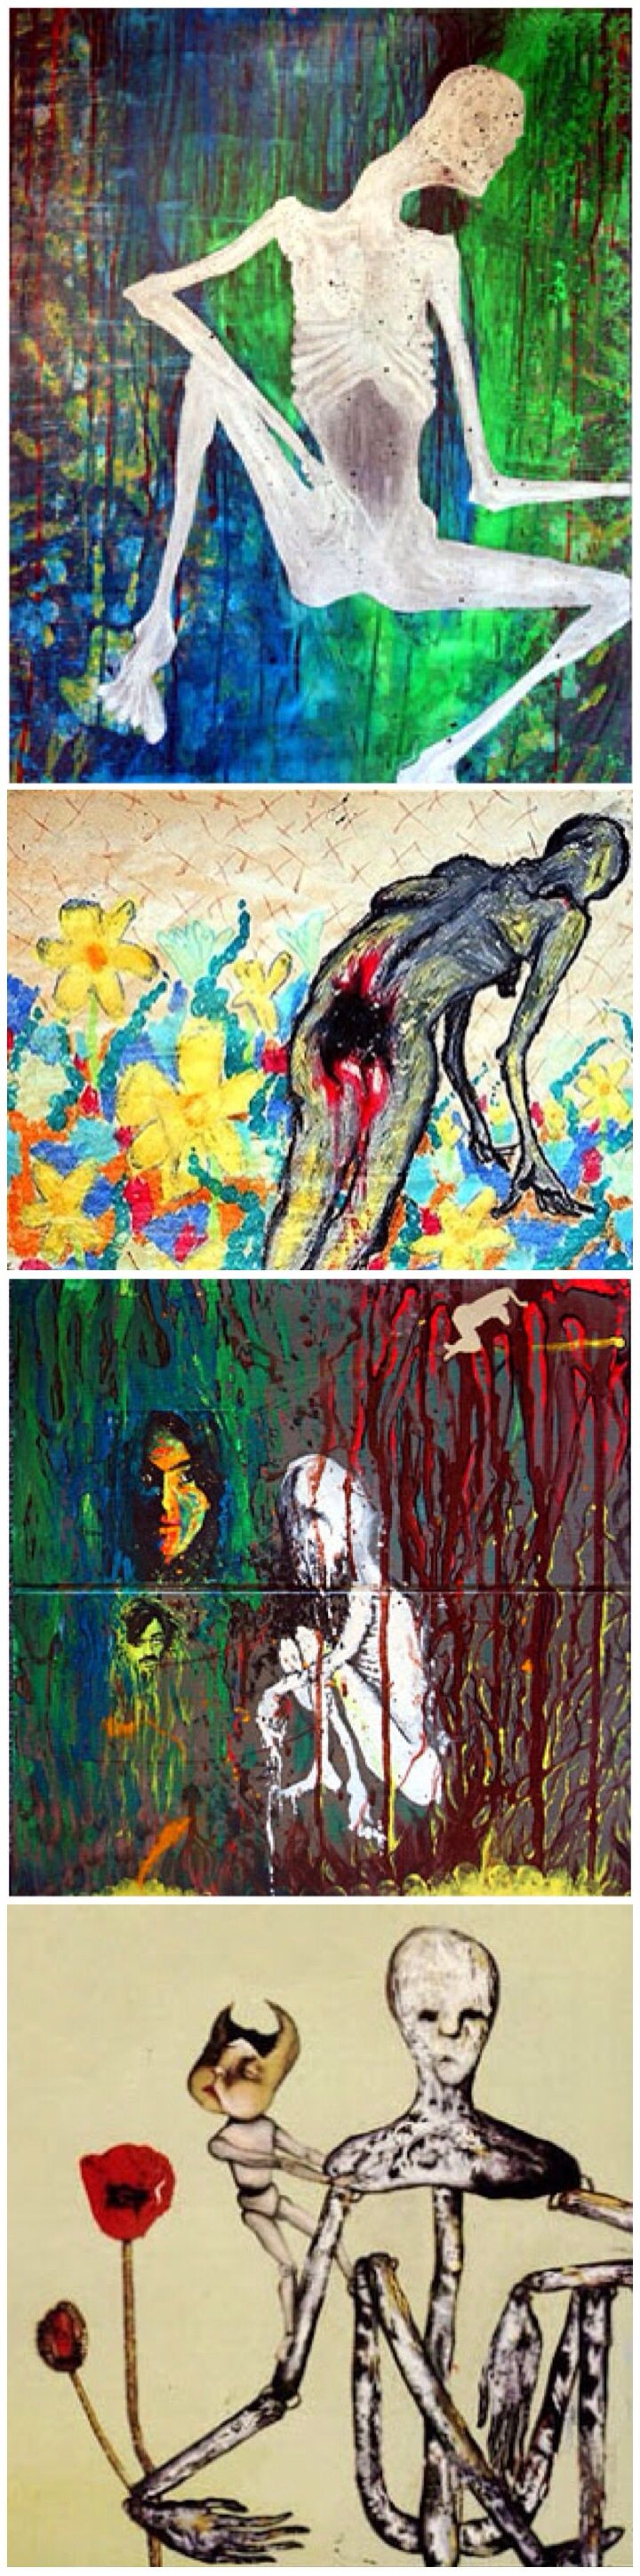 Paintings by Kurt Cobain http://bromgershtrausendyatlovsky.blogspot.com/2011/01/kurt-cobains-art.html